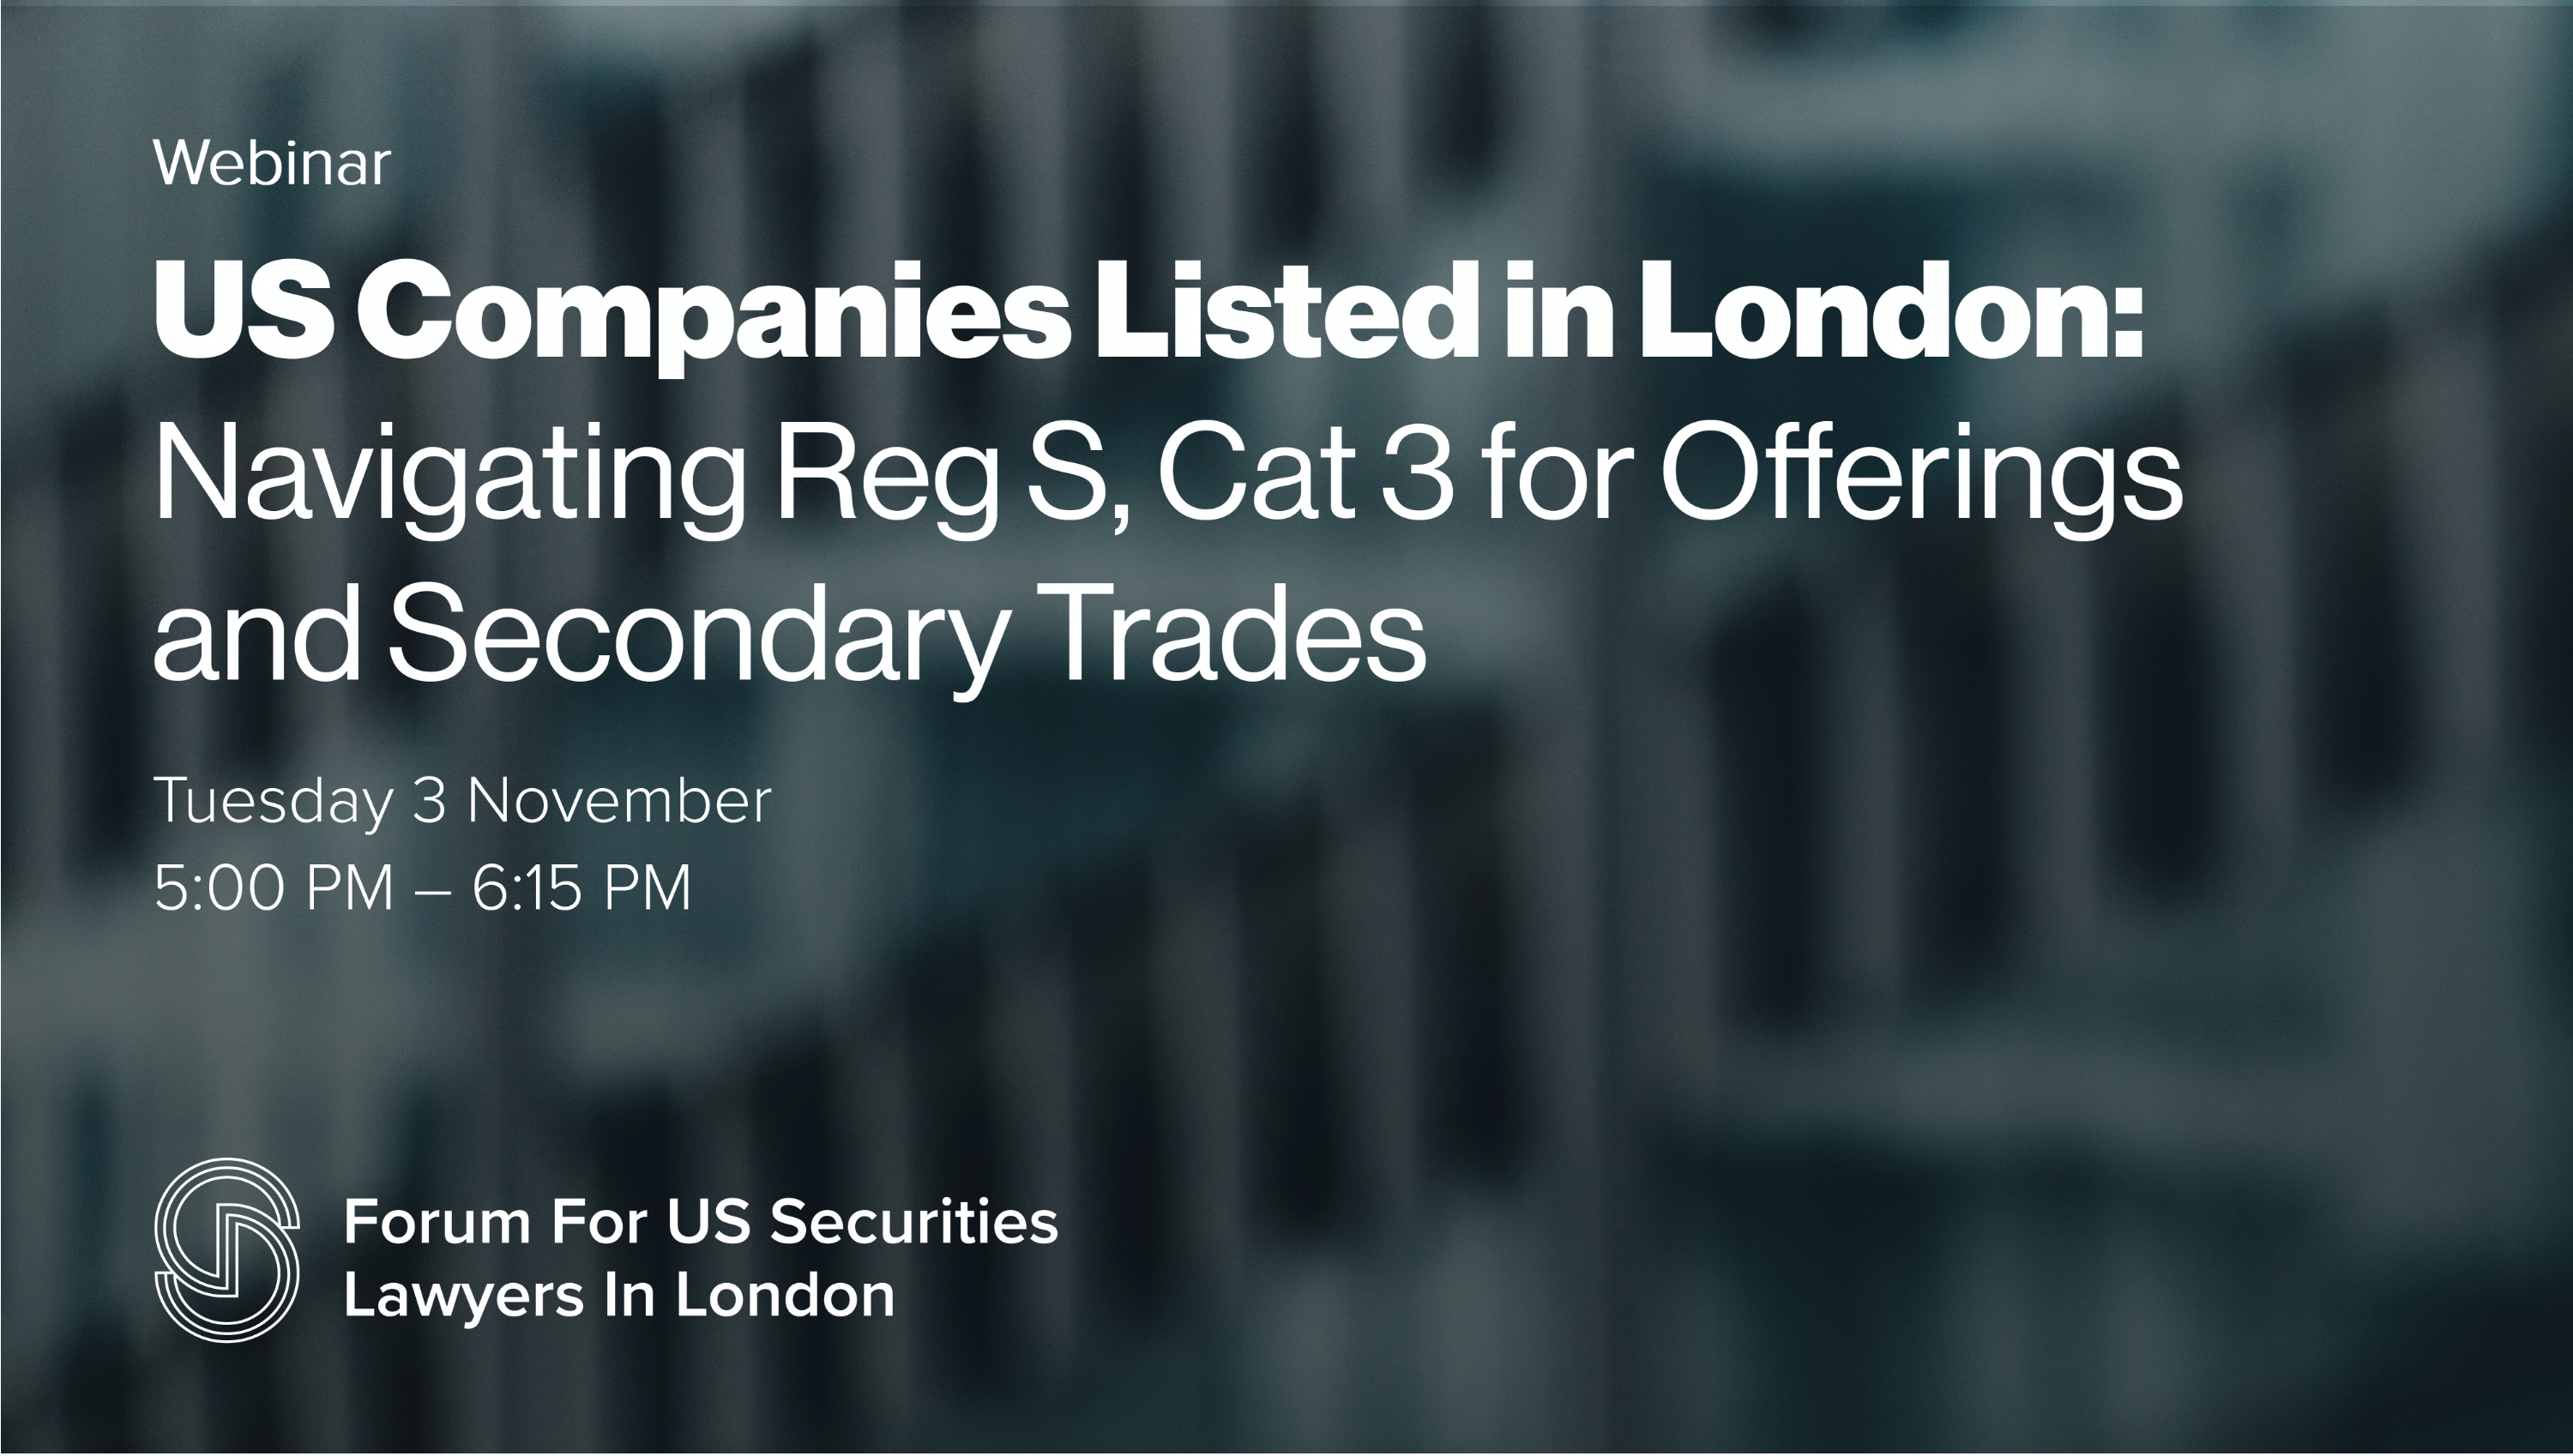 Artwork for US Companies Listed in London: Navigating Reg S. Cat 3 for Offerings and Secondary Trades